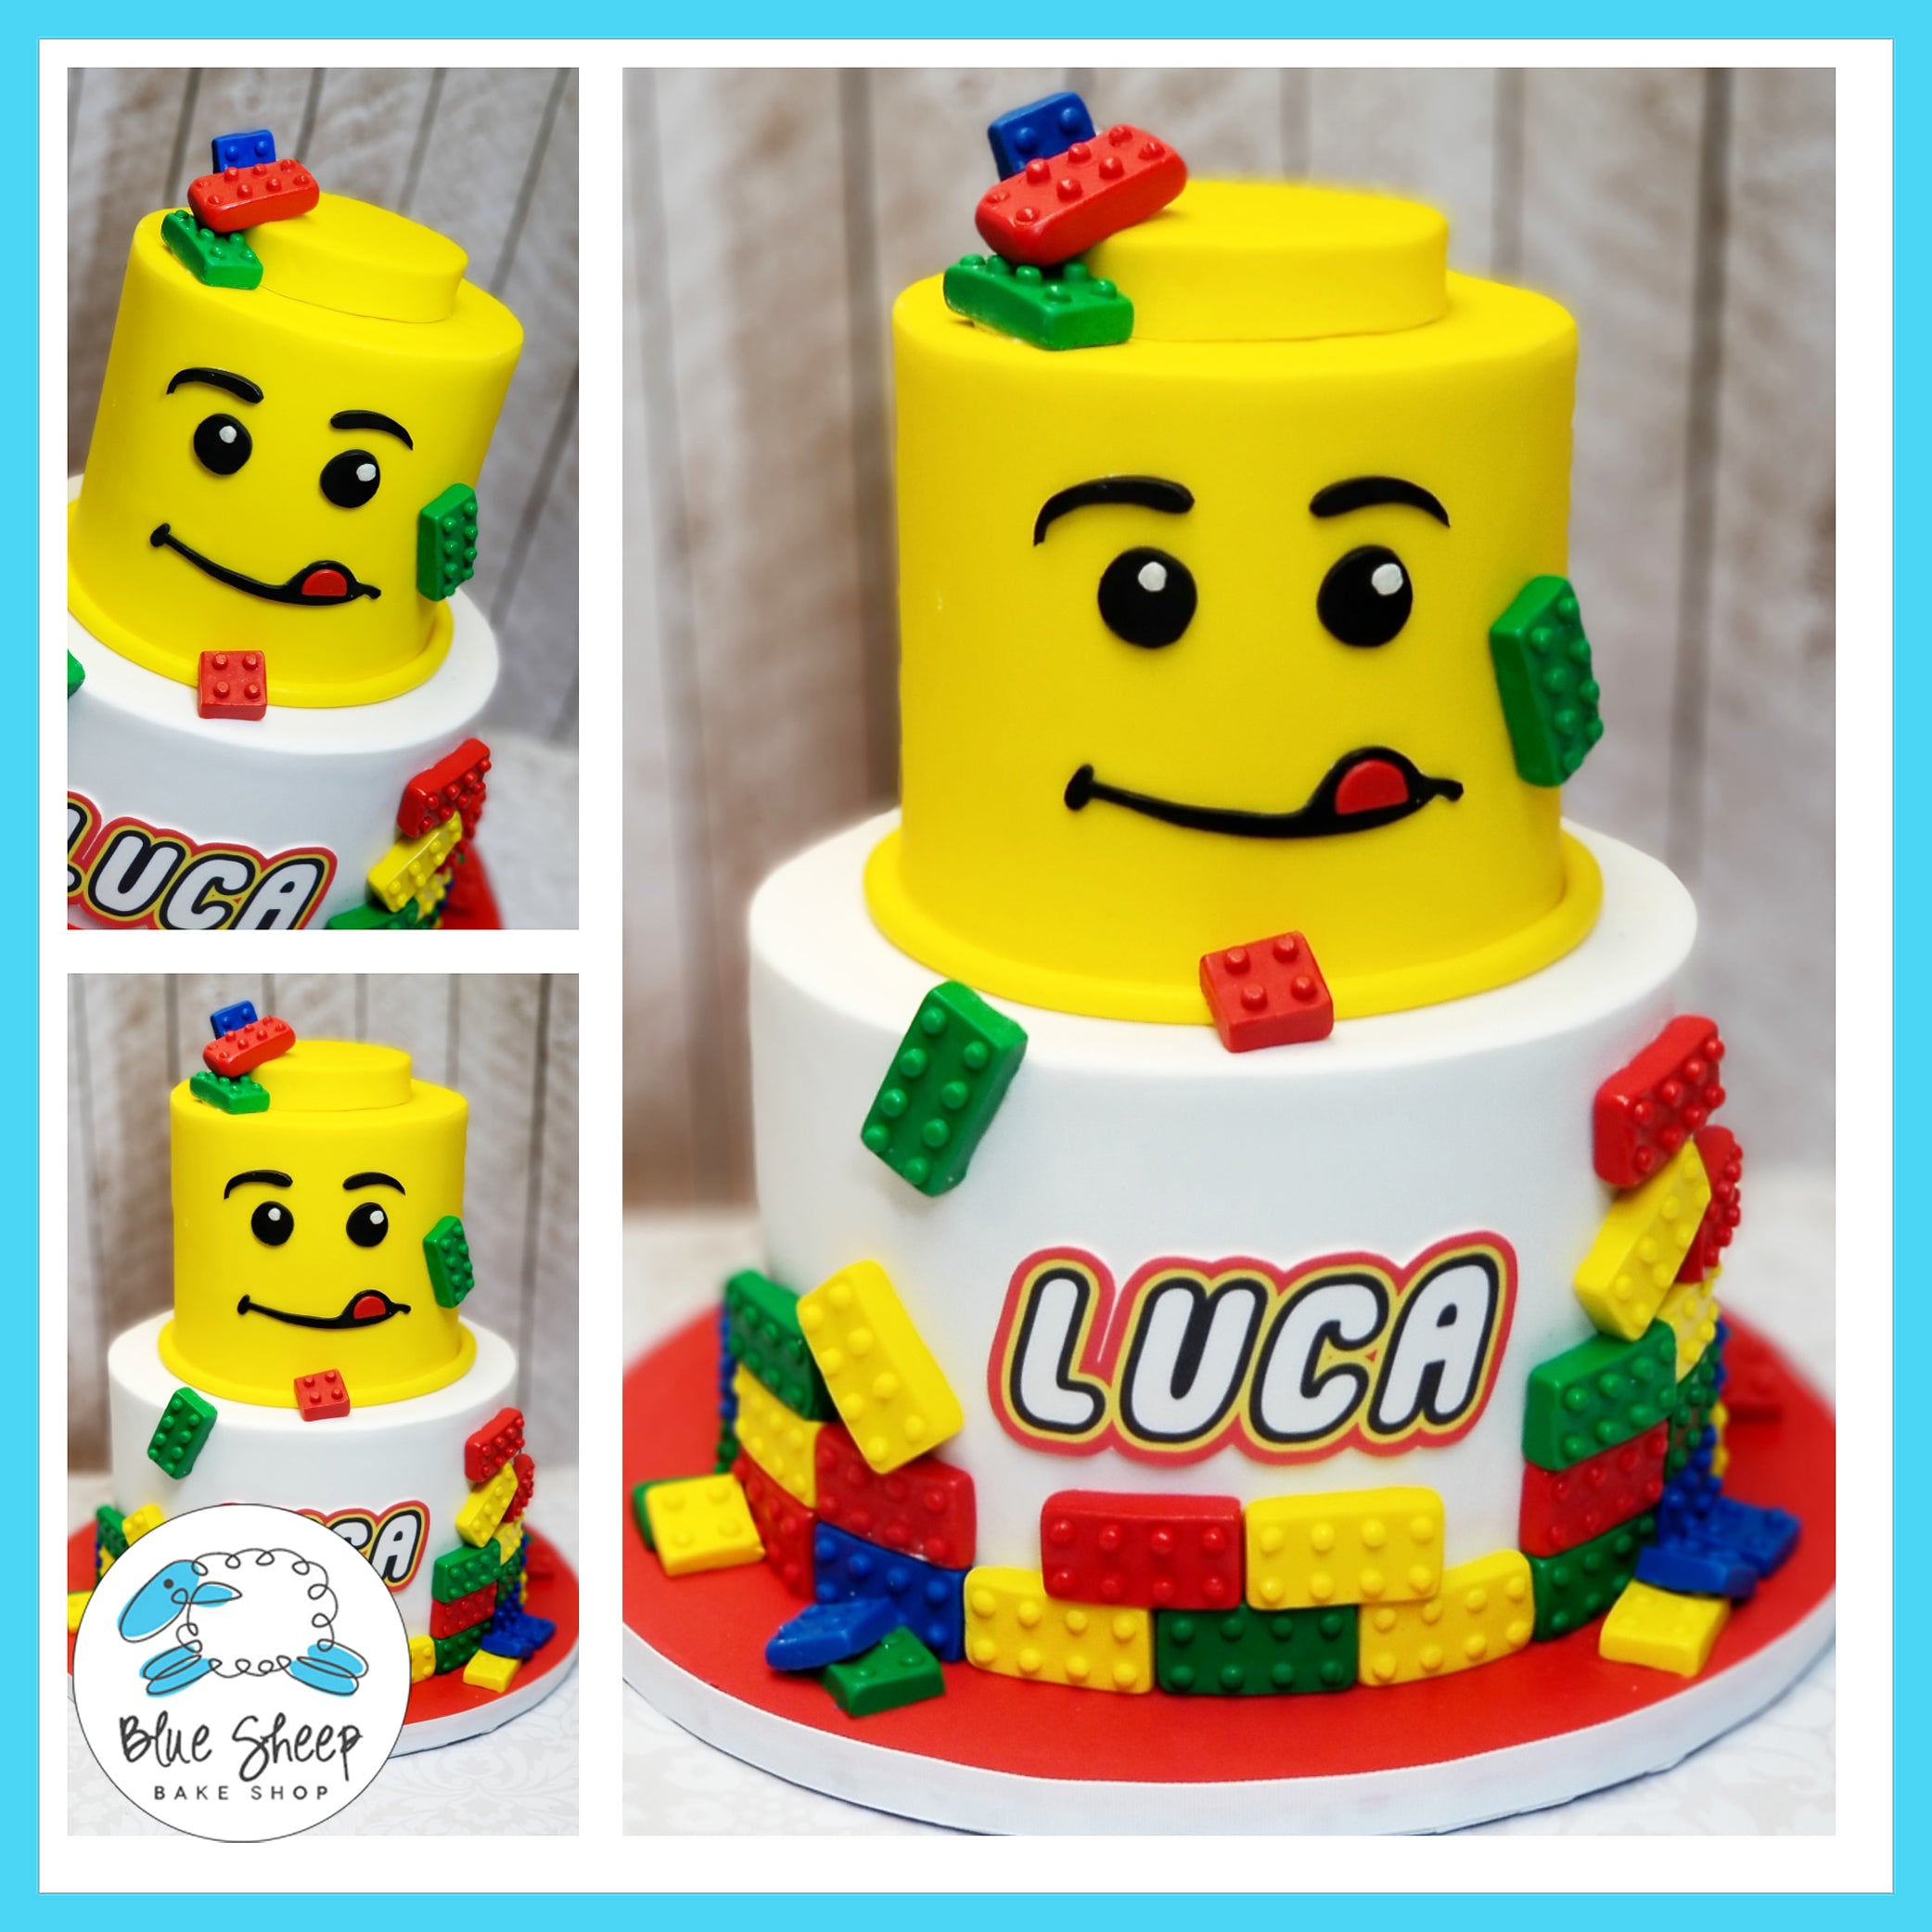 Sensational Lucas Lego Birthdaycake Blue Sheep Bake Shop Funny Birthday Cards Online Sheoxdamsfinfo